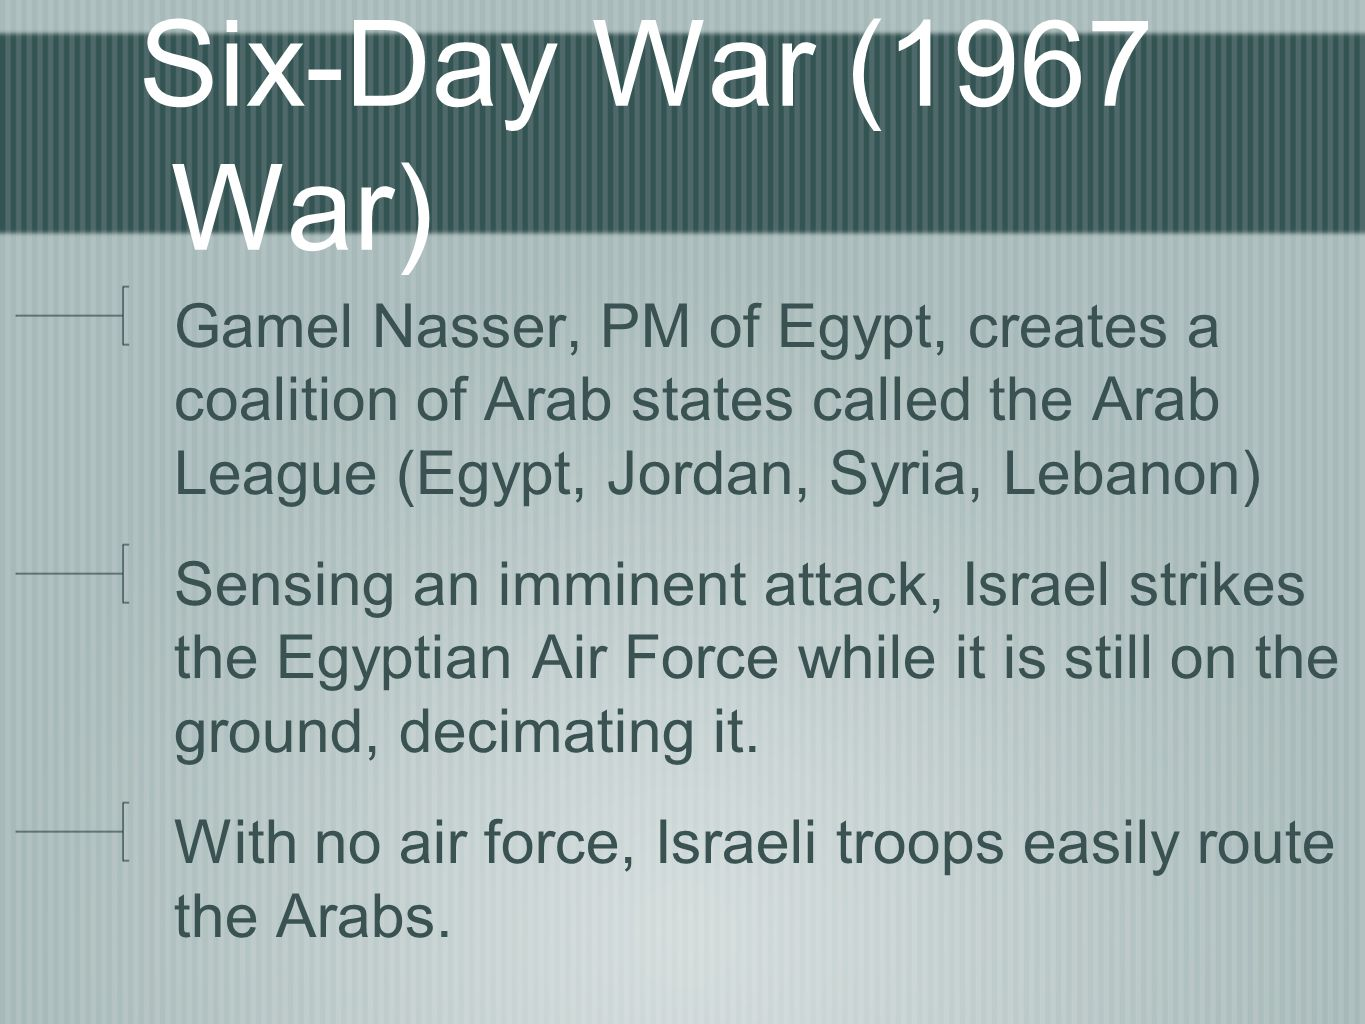 Six-Day War (1967 War) Gamel Nasser, PM of Egypt, creates a coalition of Arab states called the Arab League (Egypt, Jordan, Syria, Lebanon) Sensing an imminent attack, Israel strikes the Egyptian Air Force while it is still on the ground, decimating it.